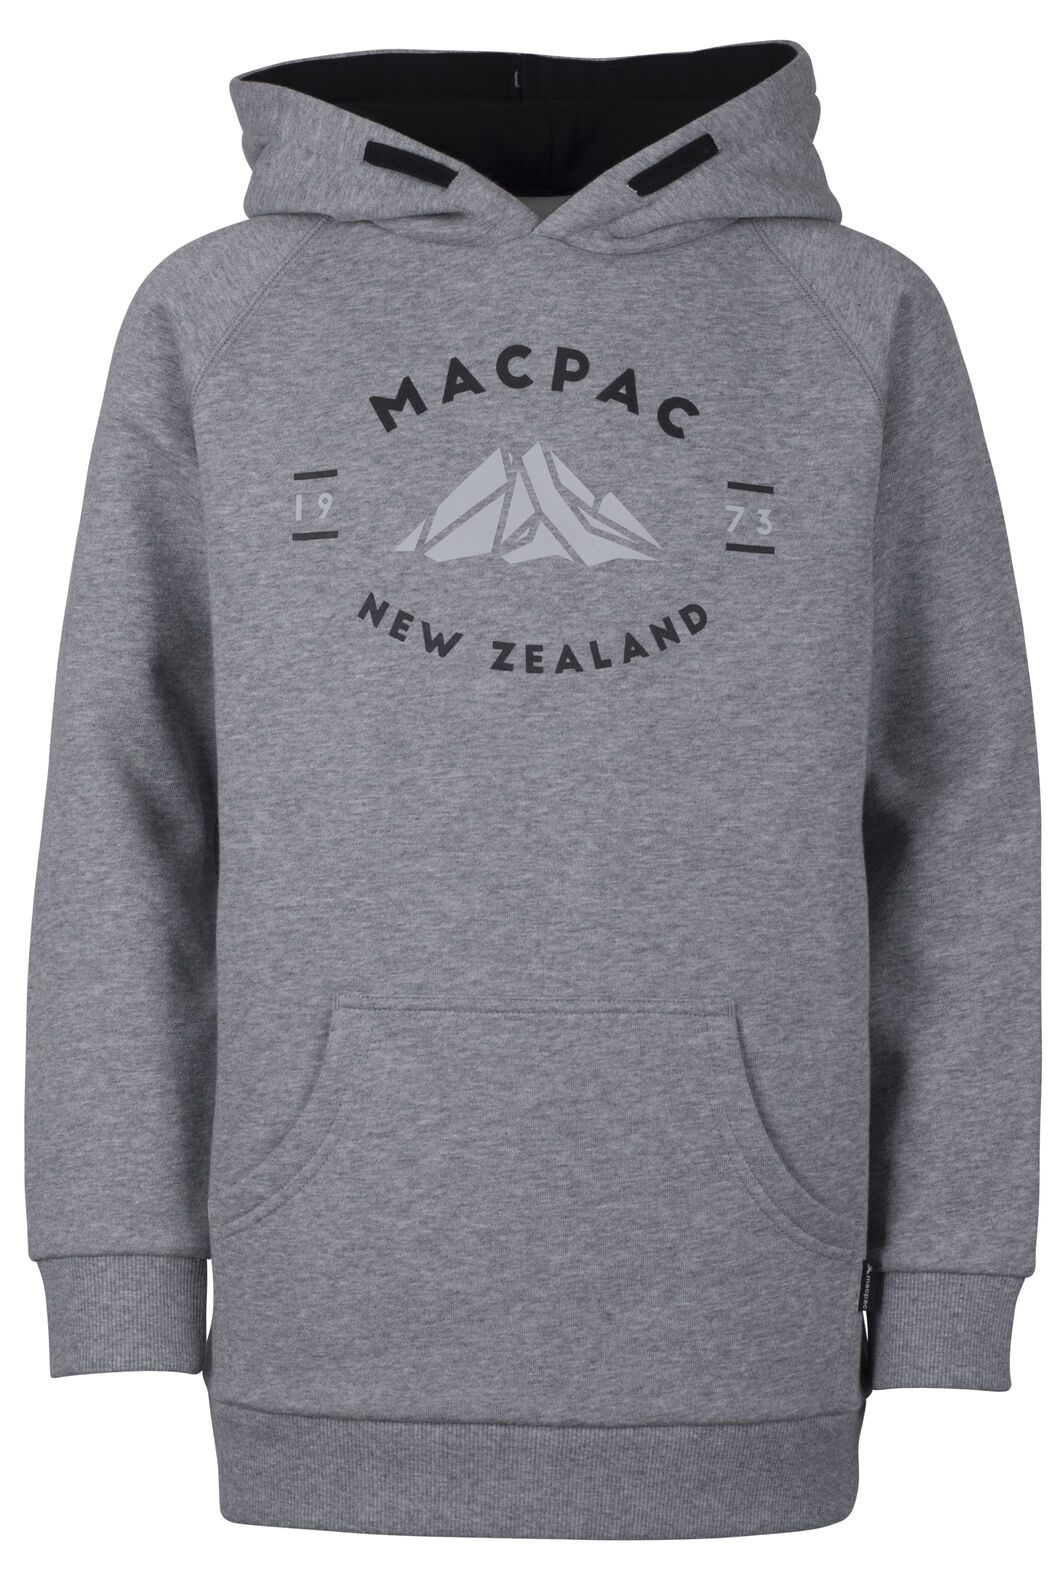 Organic Mountain Hoody - Kids', Grey Marle, hi-res